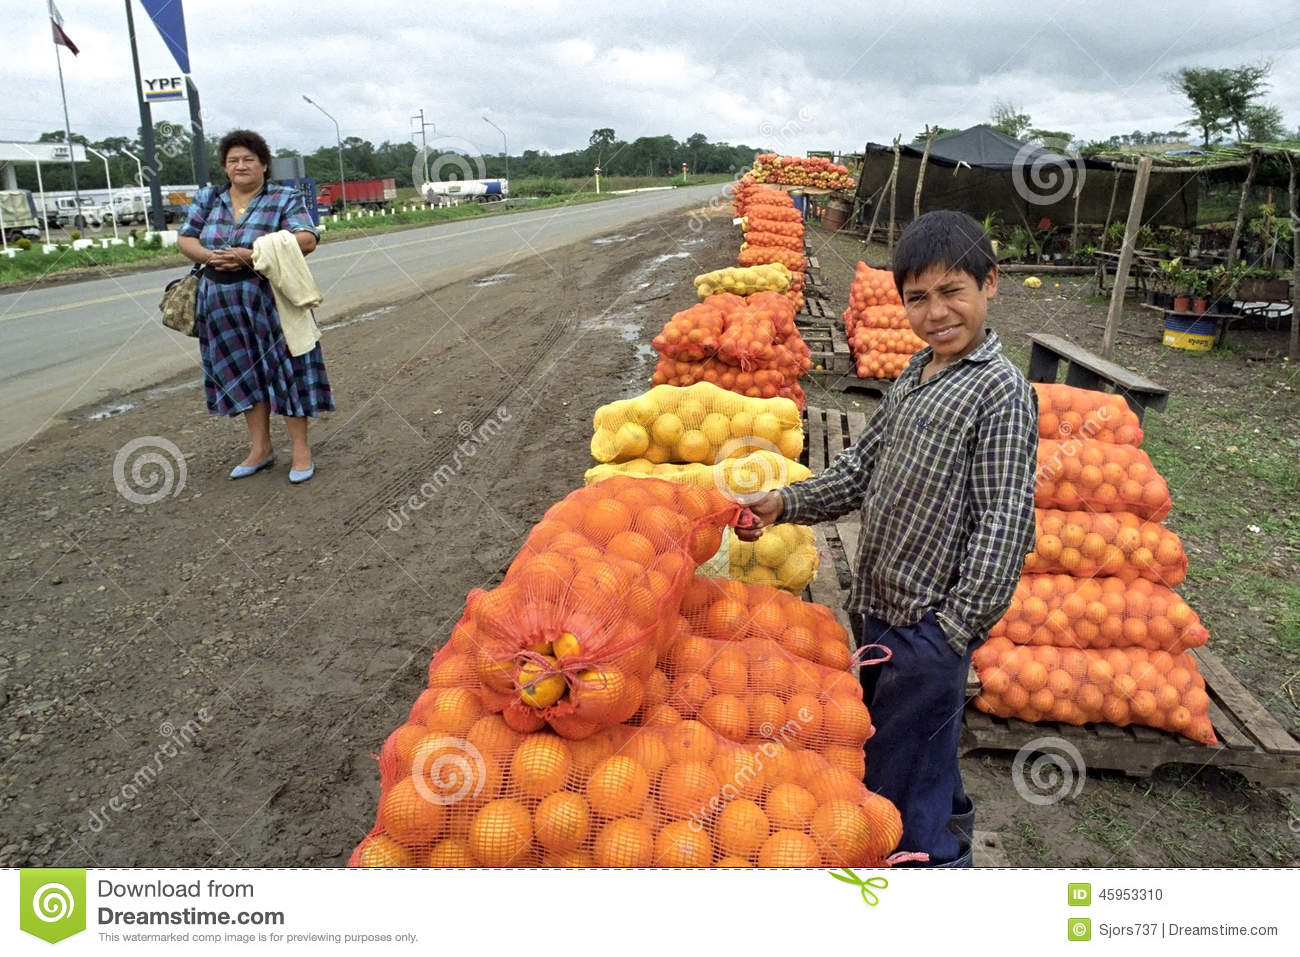 Street Dreams Auto >> Street Trading, Sales Of Fruits By Argentine Boy Editorial Image - Image: 45953310